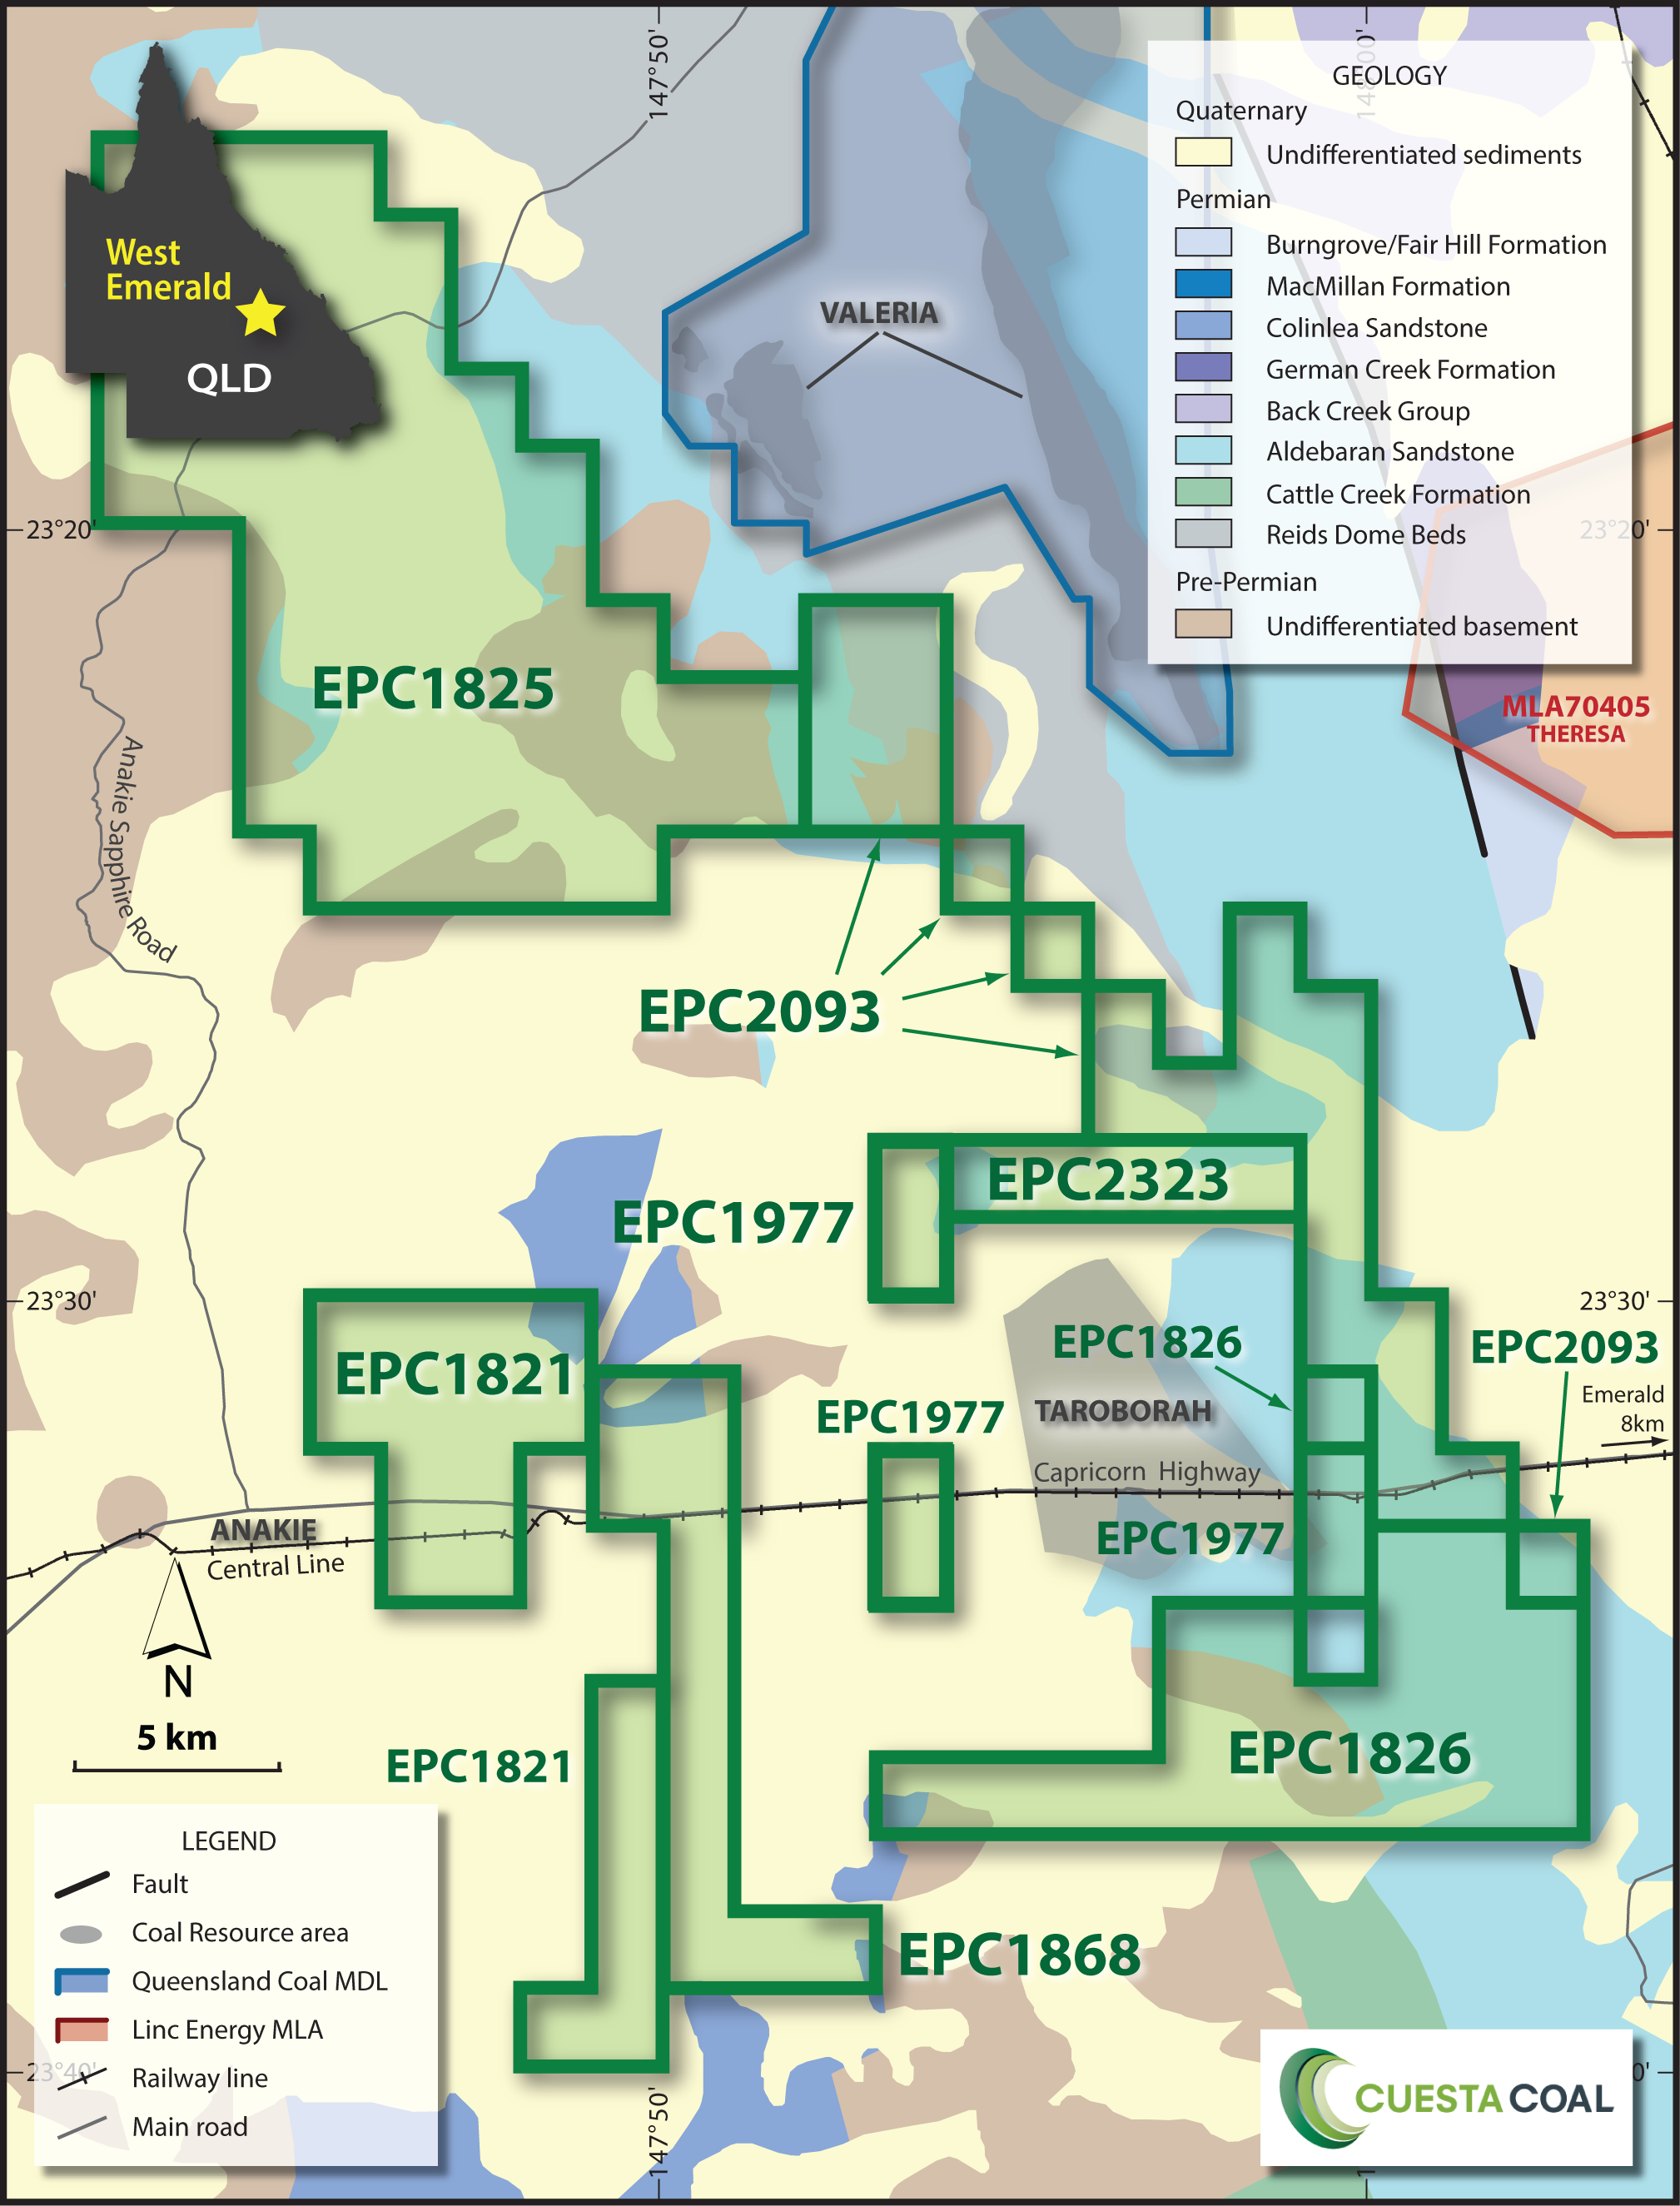 Cuesta Coal West Emerald Geology Map